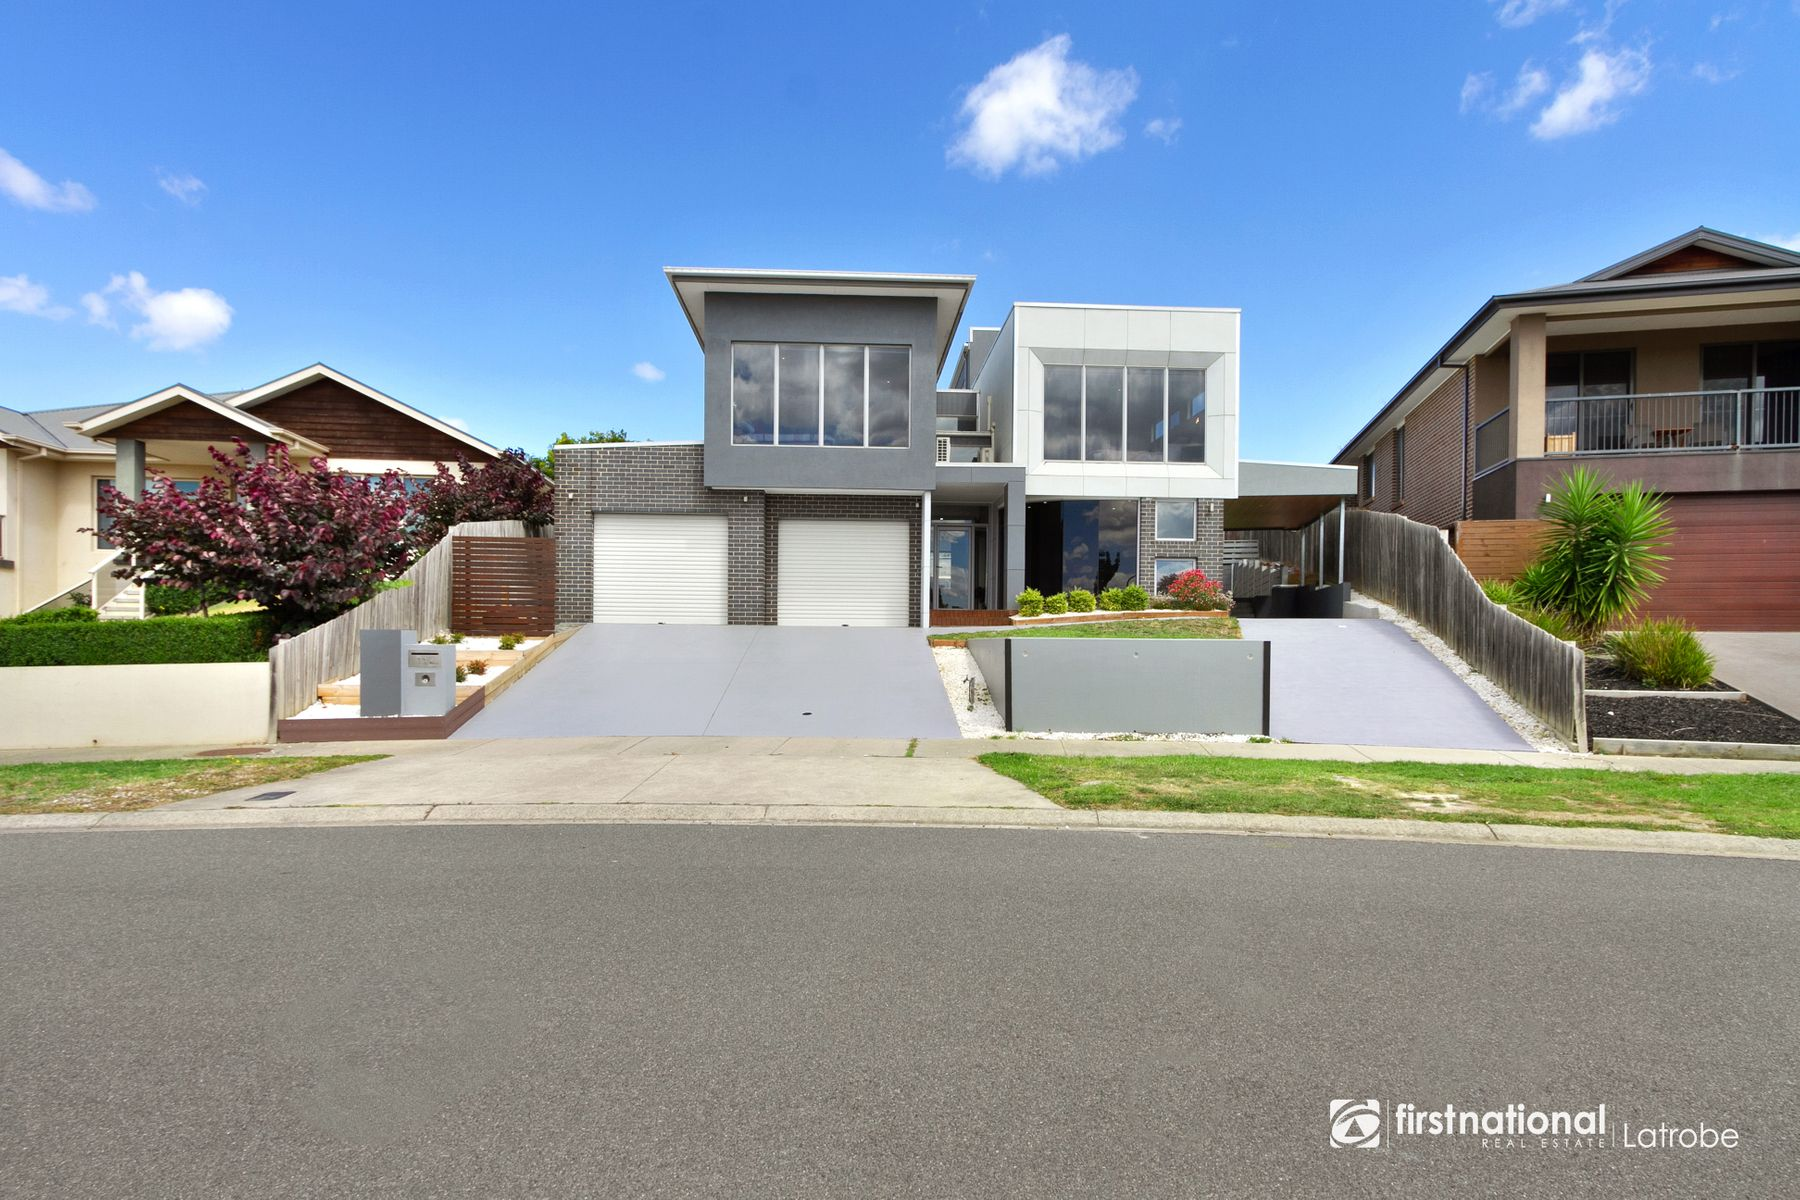 13 Notting Hill, Traralgon, VIC 3844